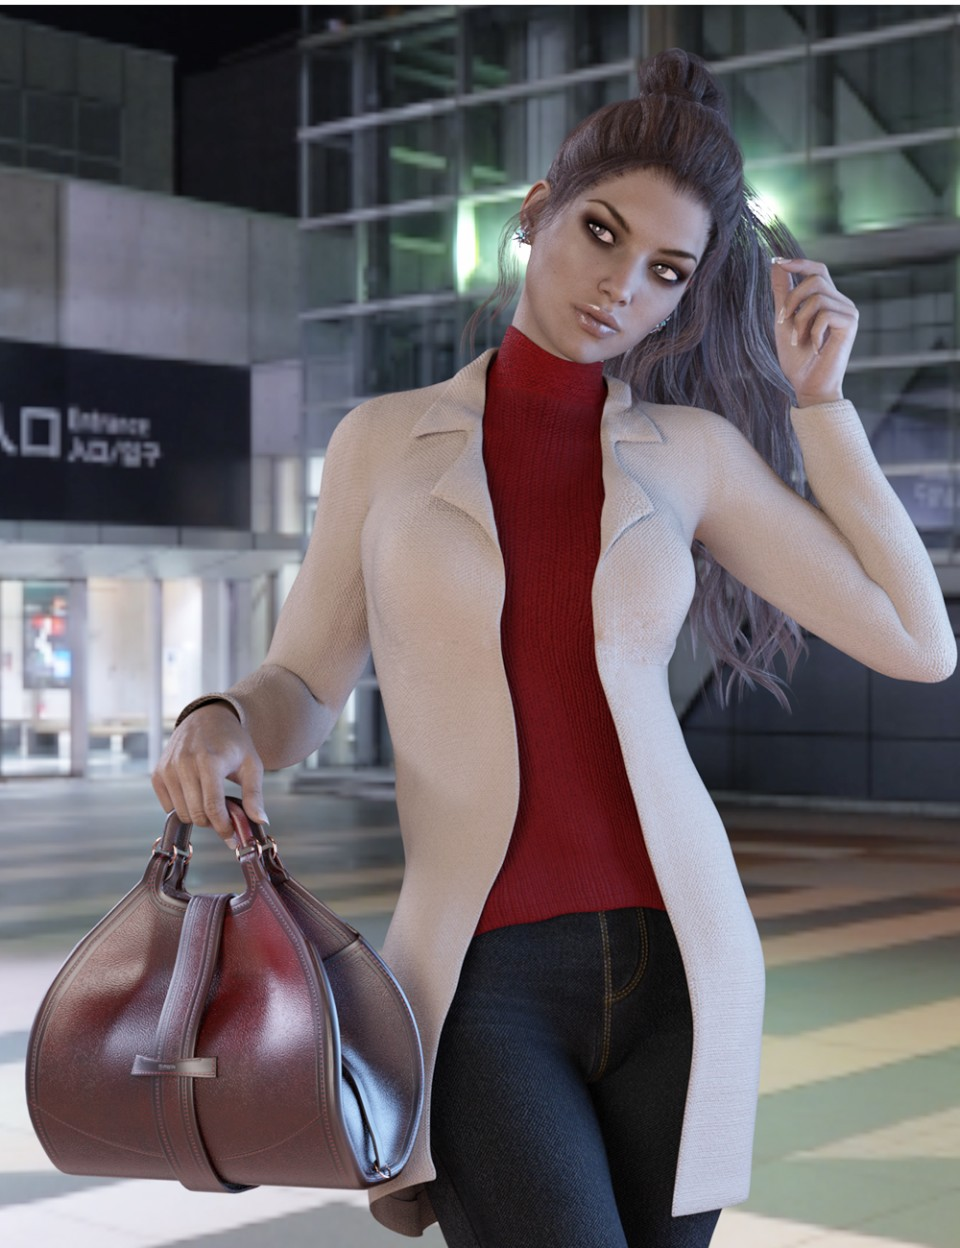 X-Fashion Chic Winter Outfit for Genesis 3 Female(s)_DAZ3D下载站